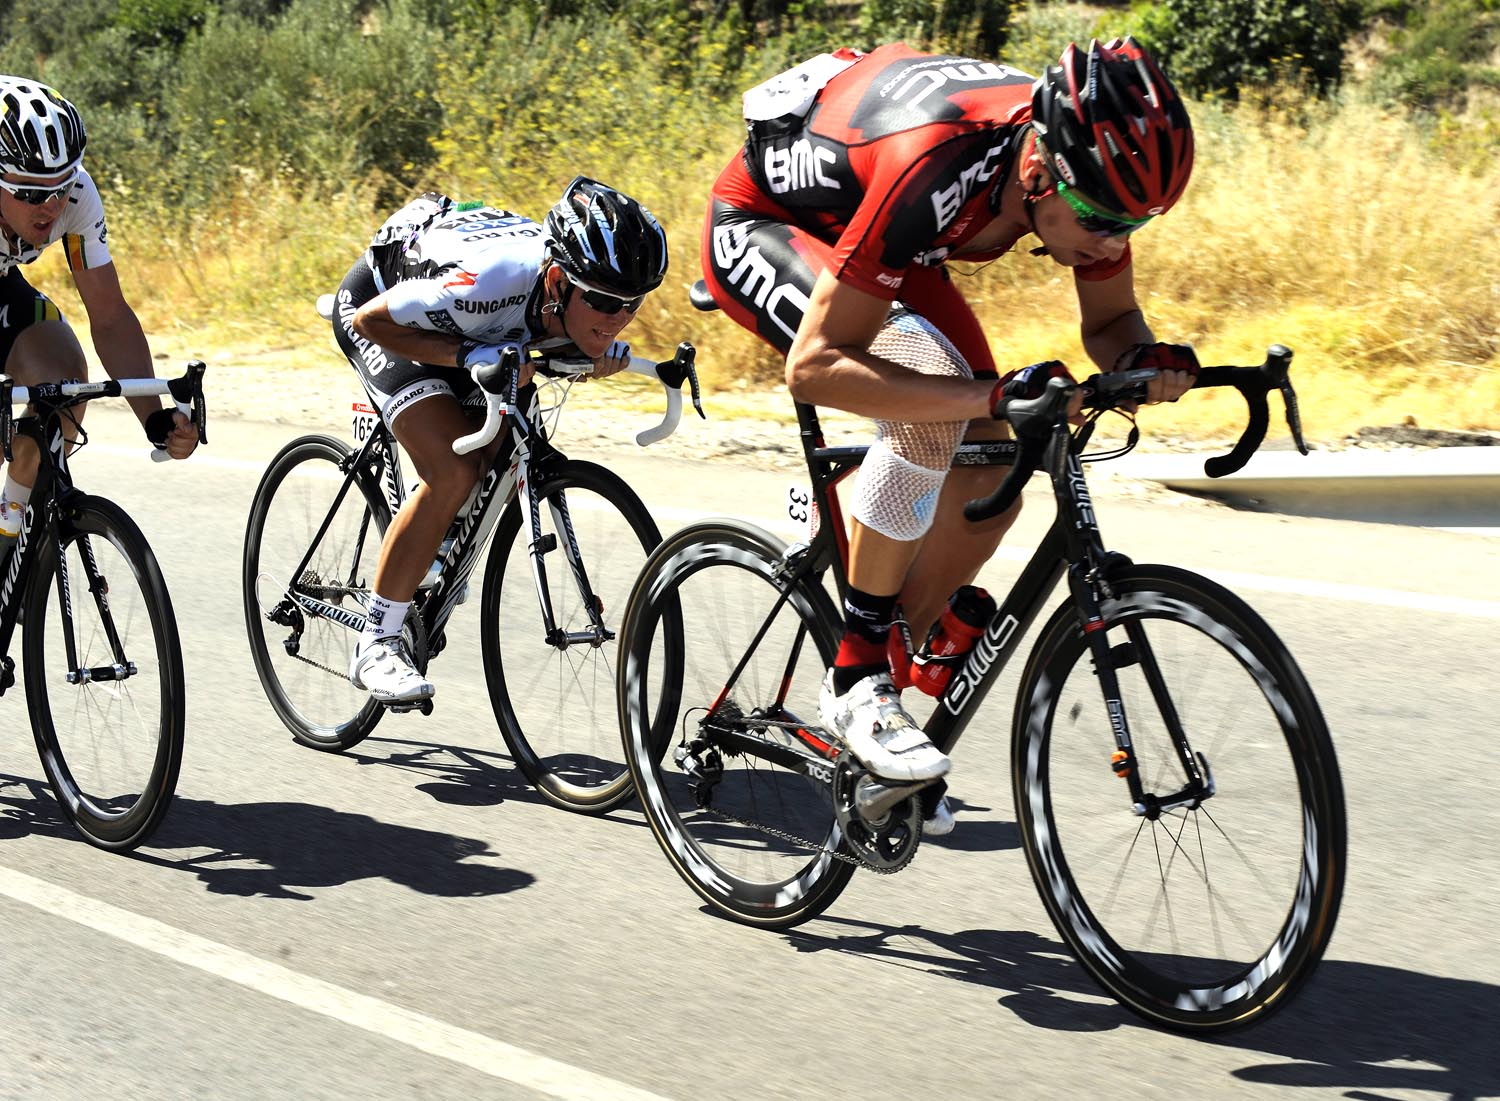 Taylor Phinney in early escape, Vuelta a Espana 2011, stage six